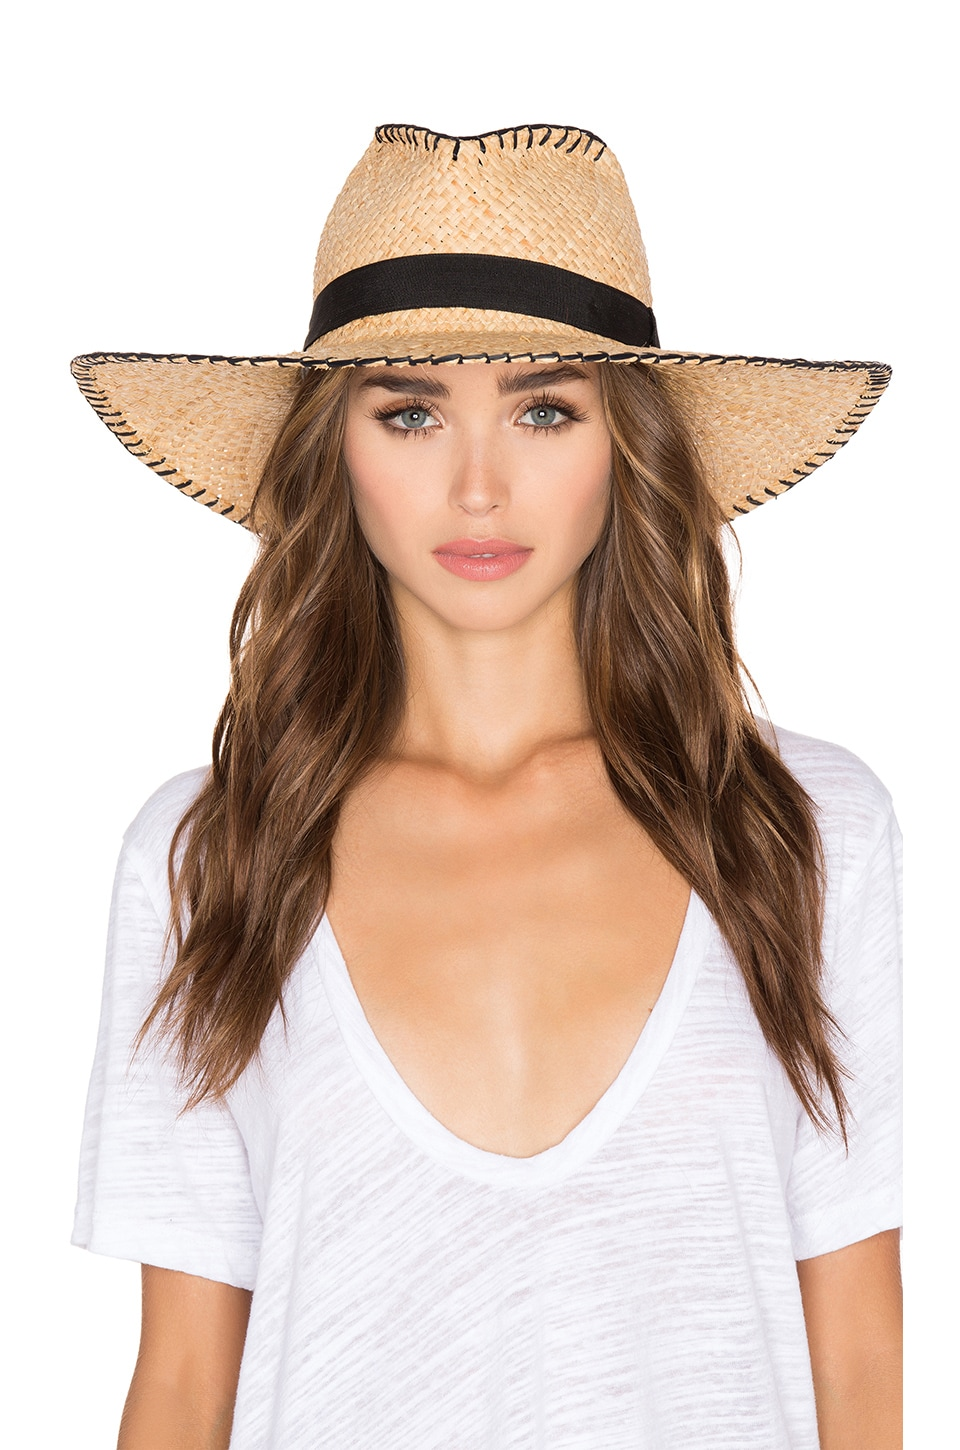 ale by alessandra Brava Hat in Natural & Black